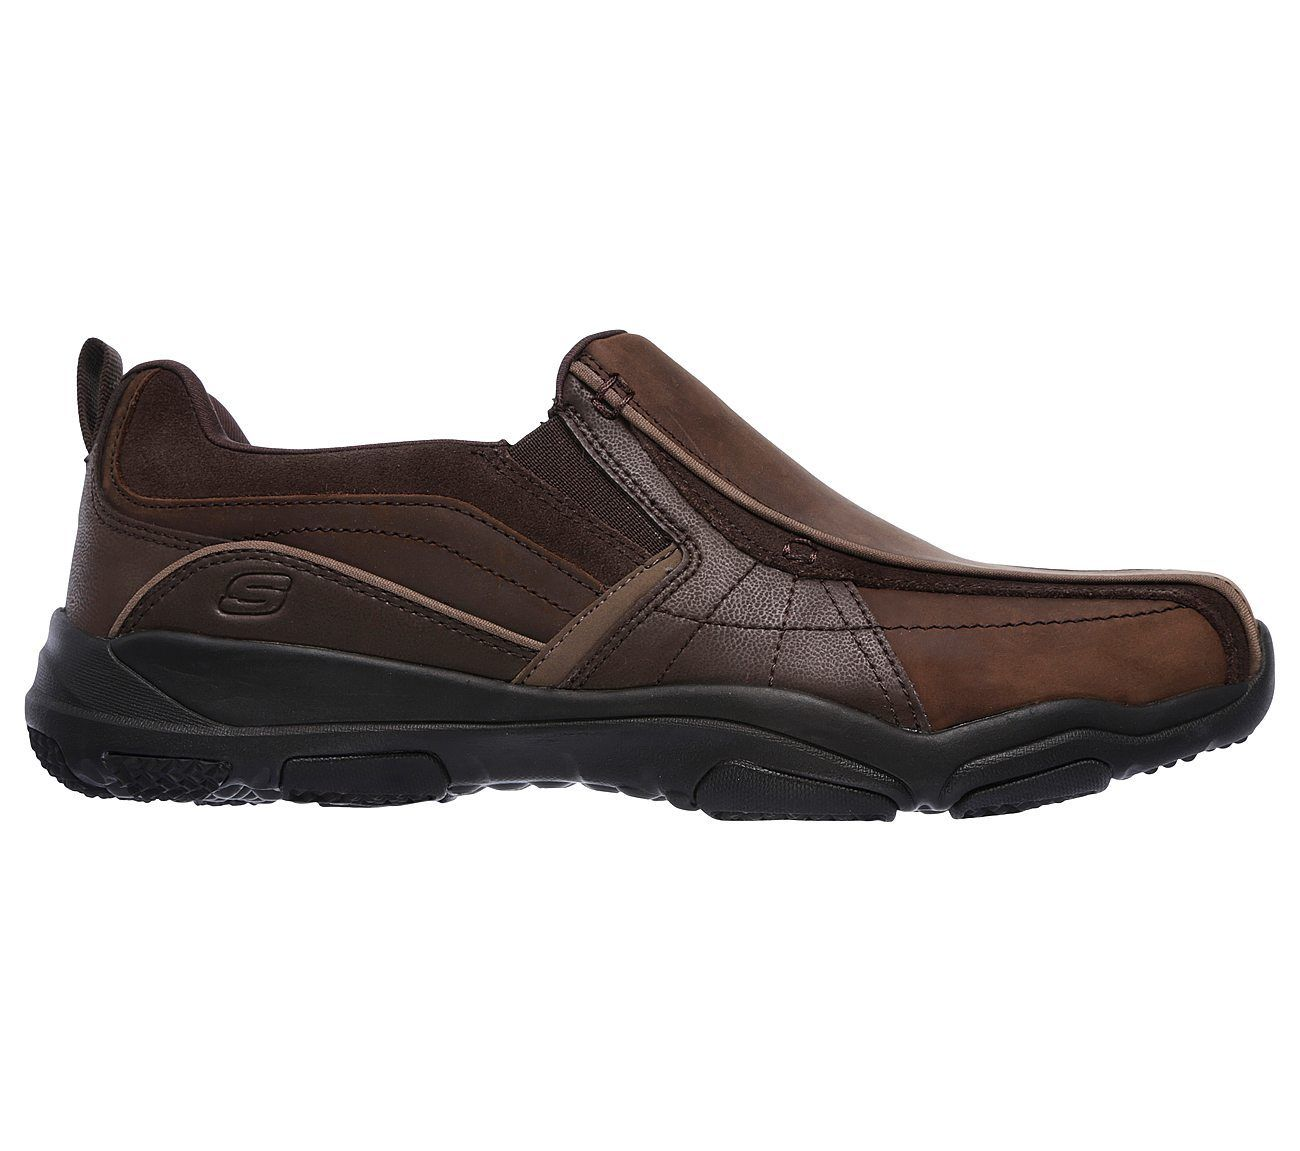 Skechers Relaxed Fit Memory Foam Shoe For Men Brown